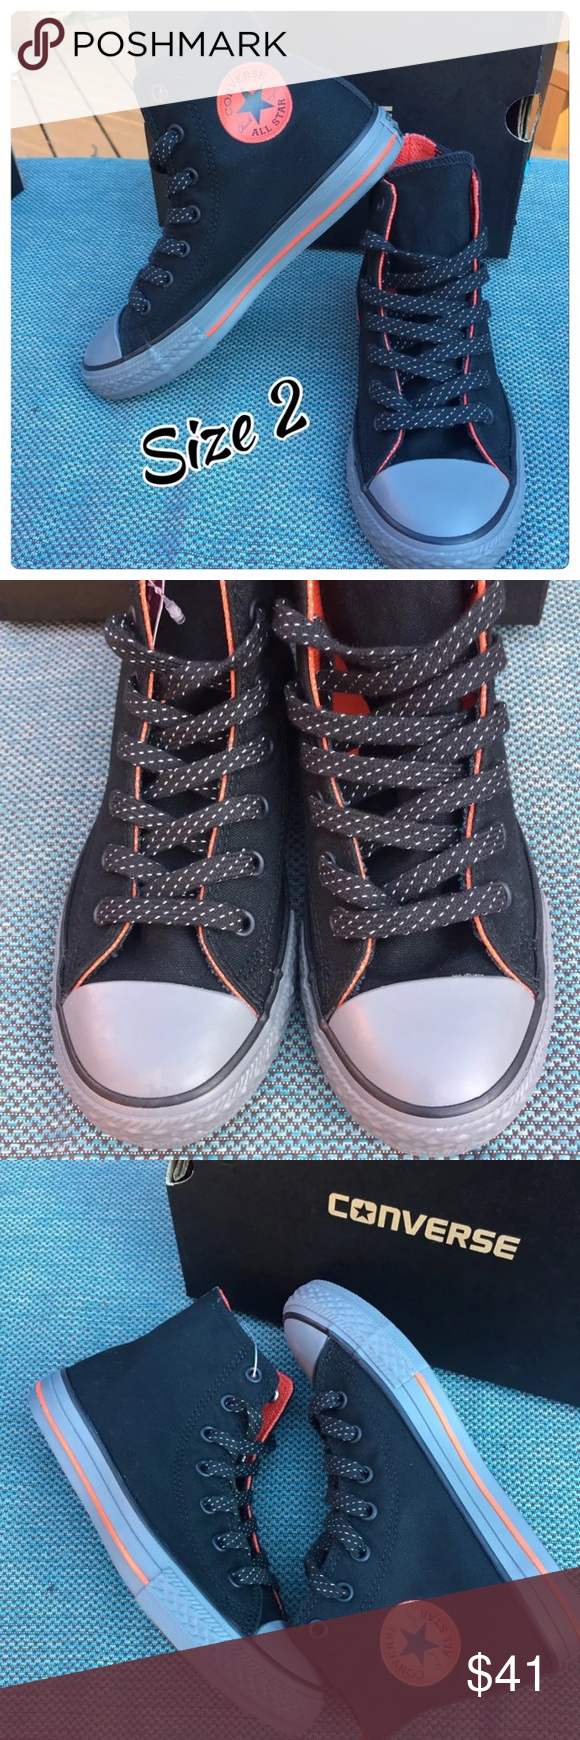 Youth Size 2 Chuck Taylor Converse NWT Brand new in Box